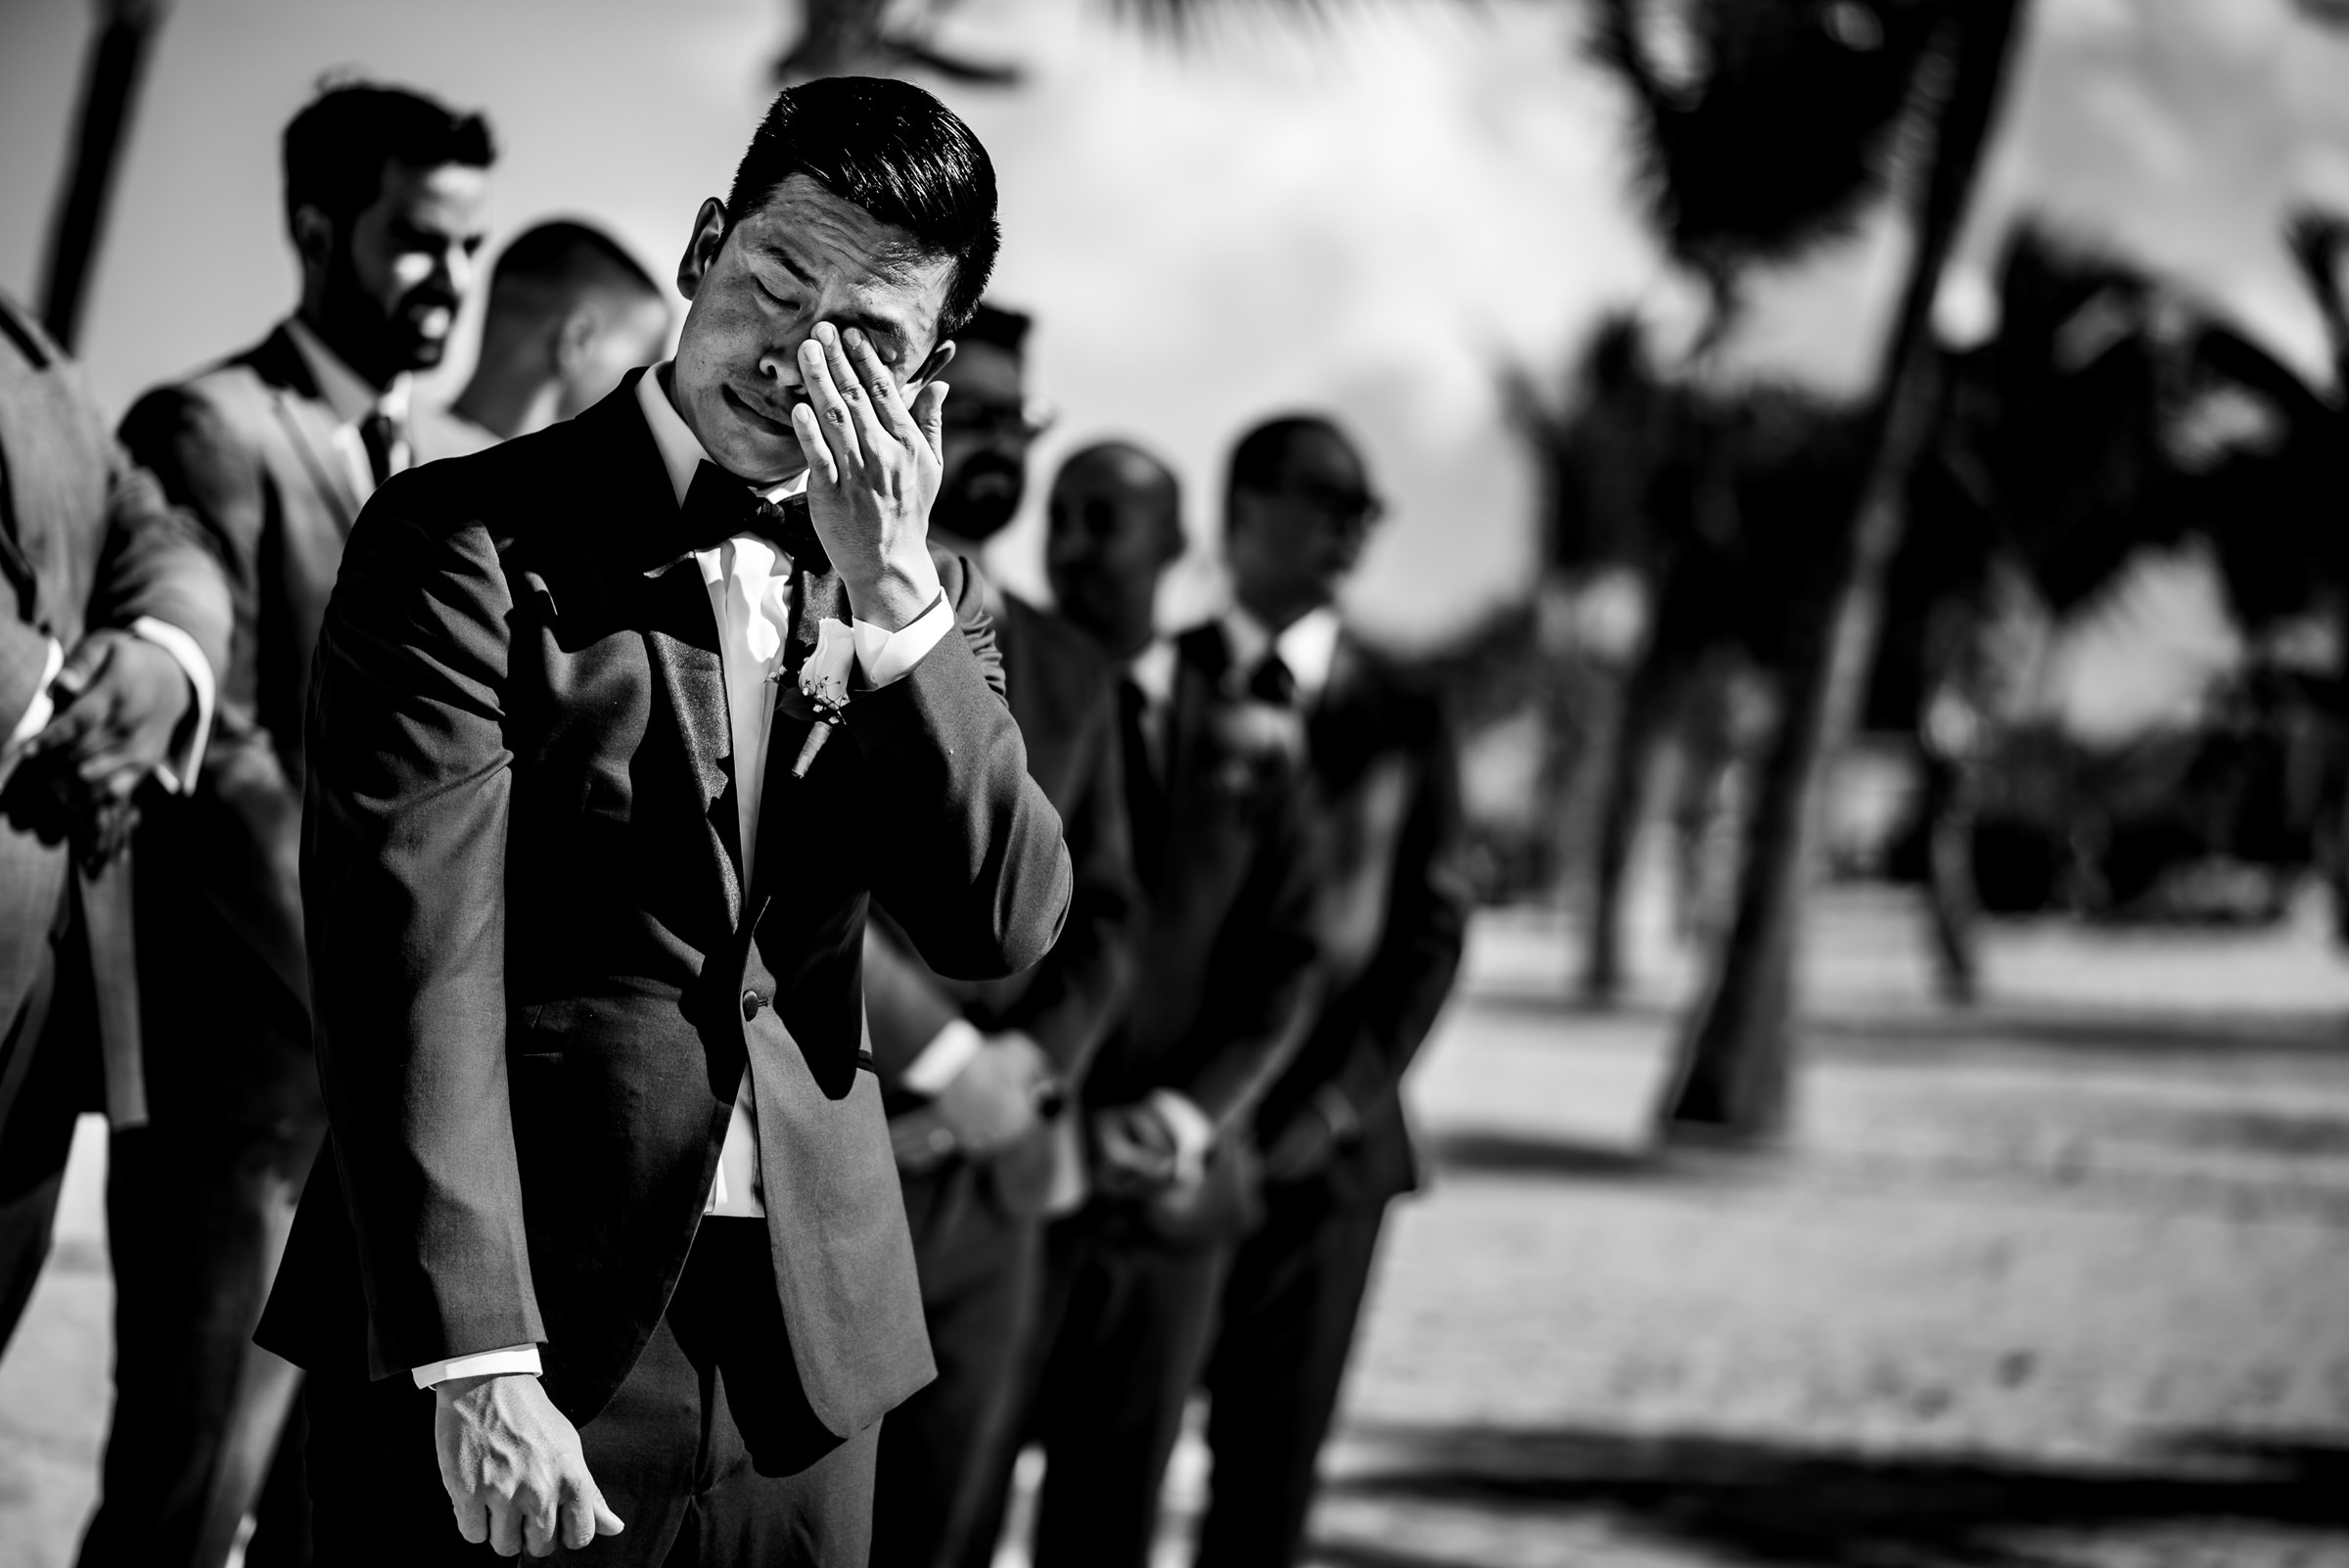 Tearful moment for the groom - photo by Moore Photography